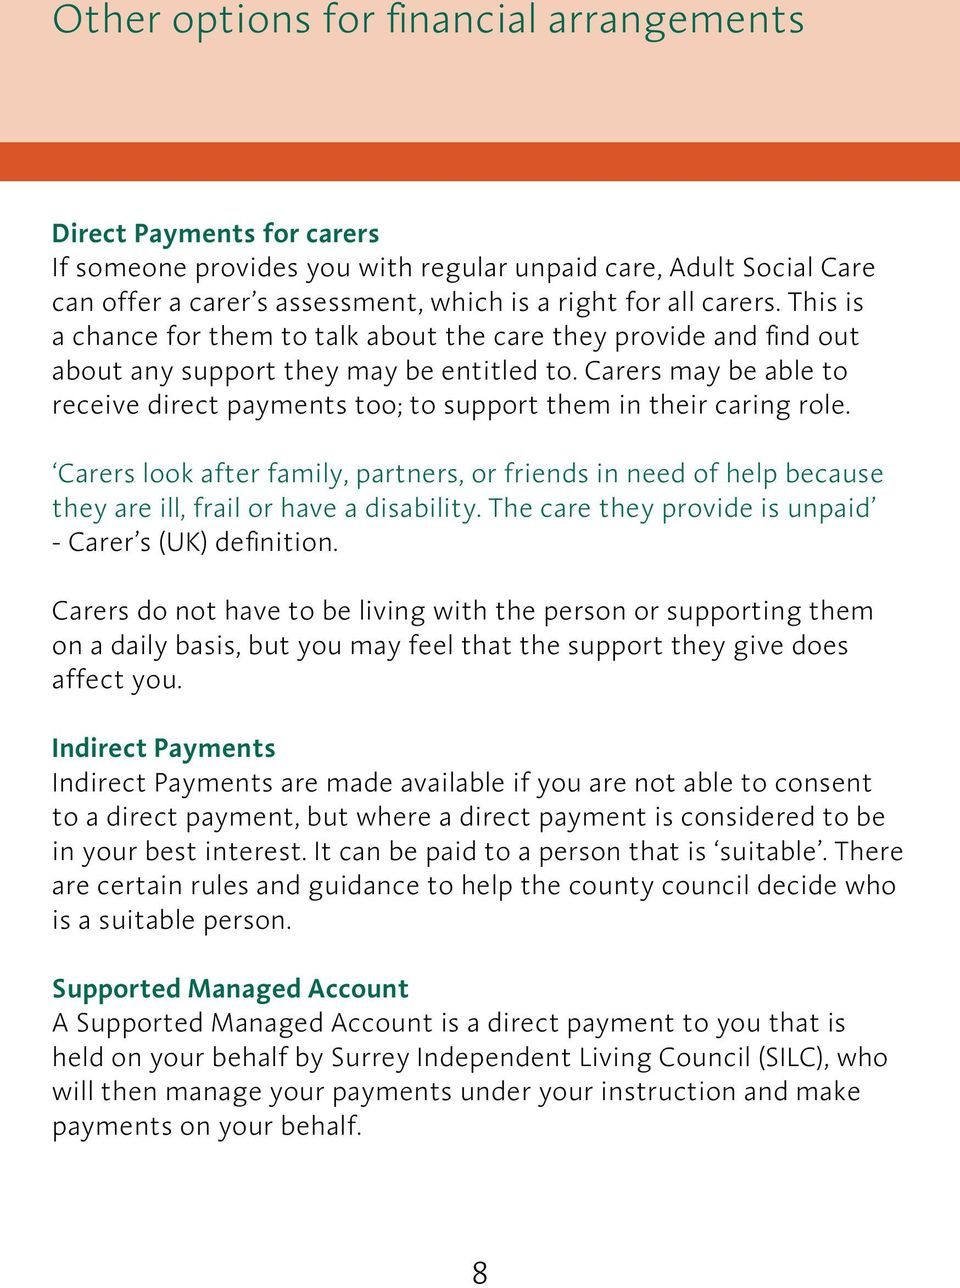 Carers may be able to receive direct payments too; to support them in their caring role.